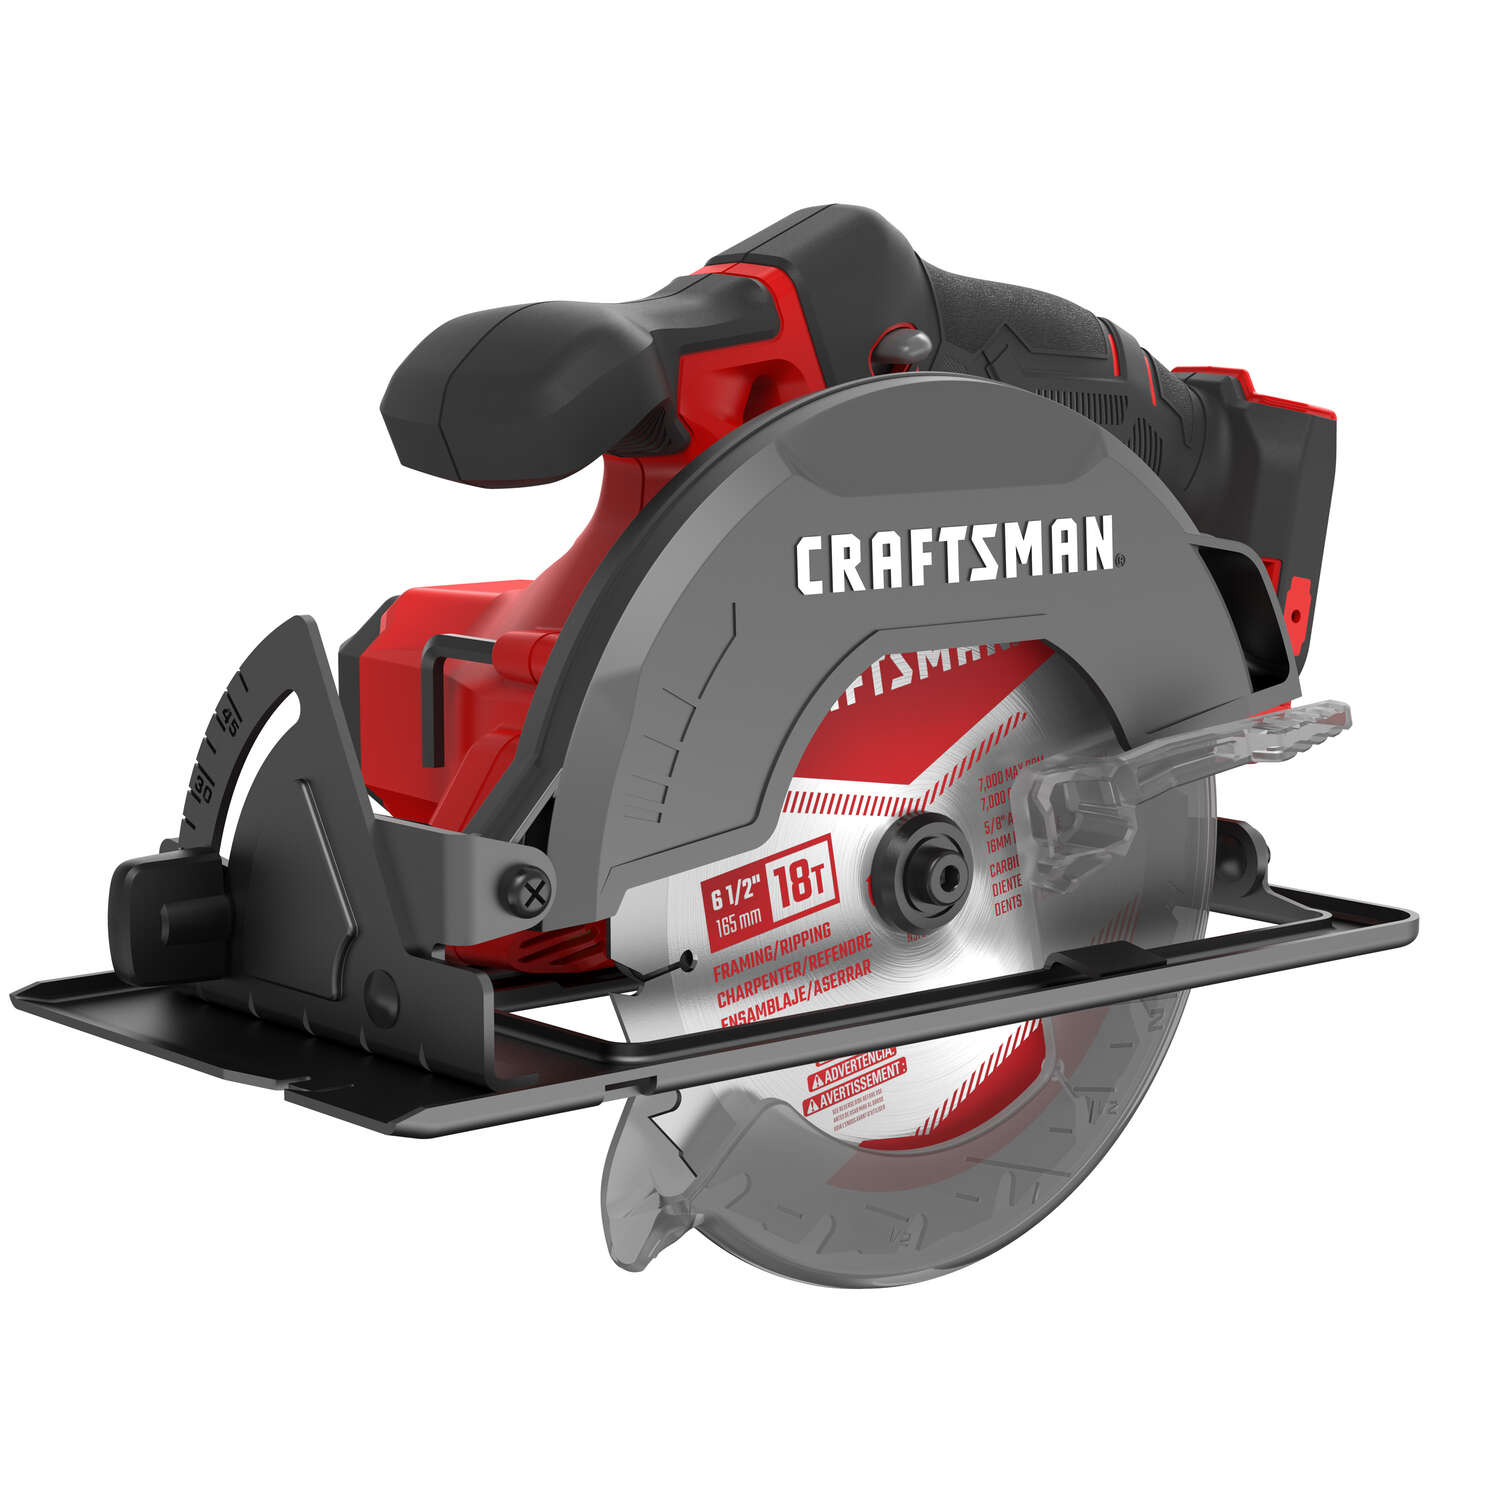 Craftsman  20 volt 6-1/2 in. Cordless  Circular Saw  Tool Only